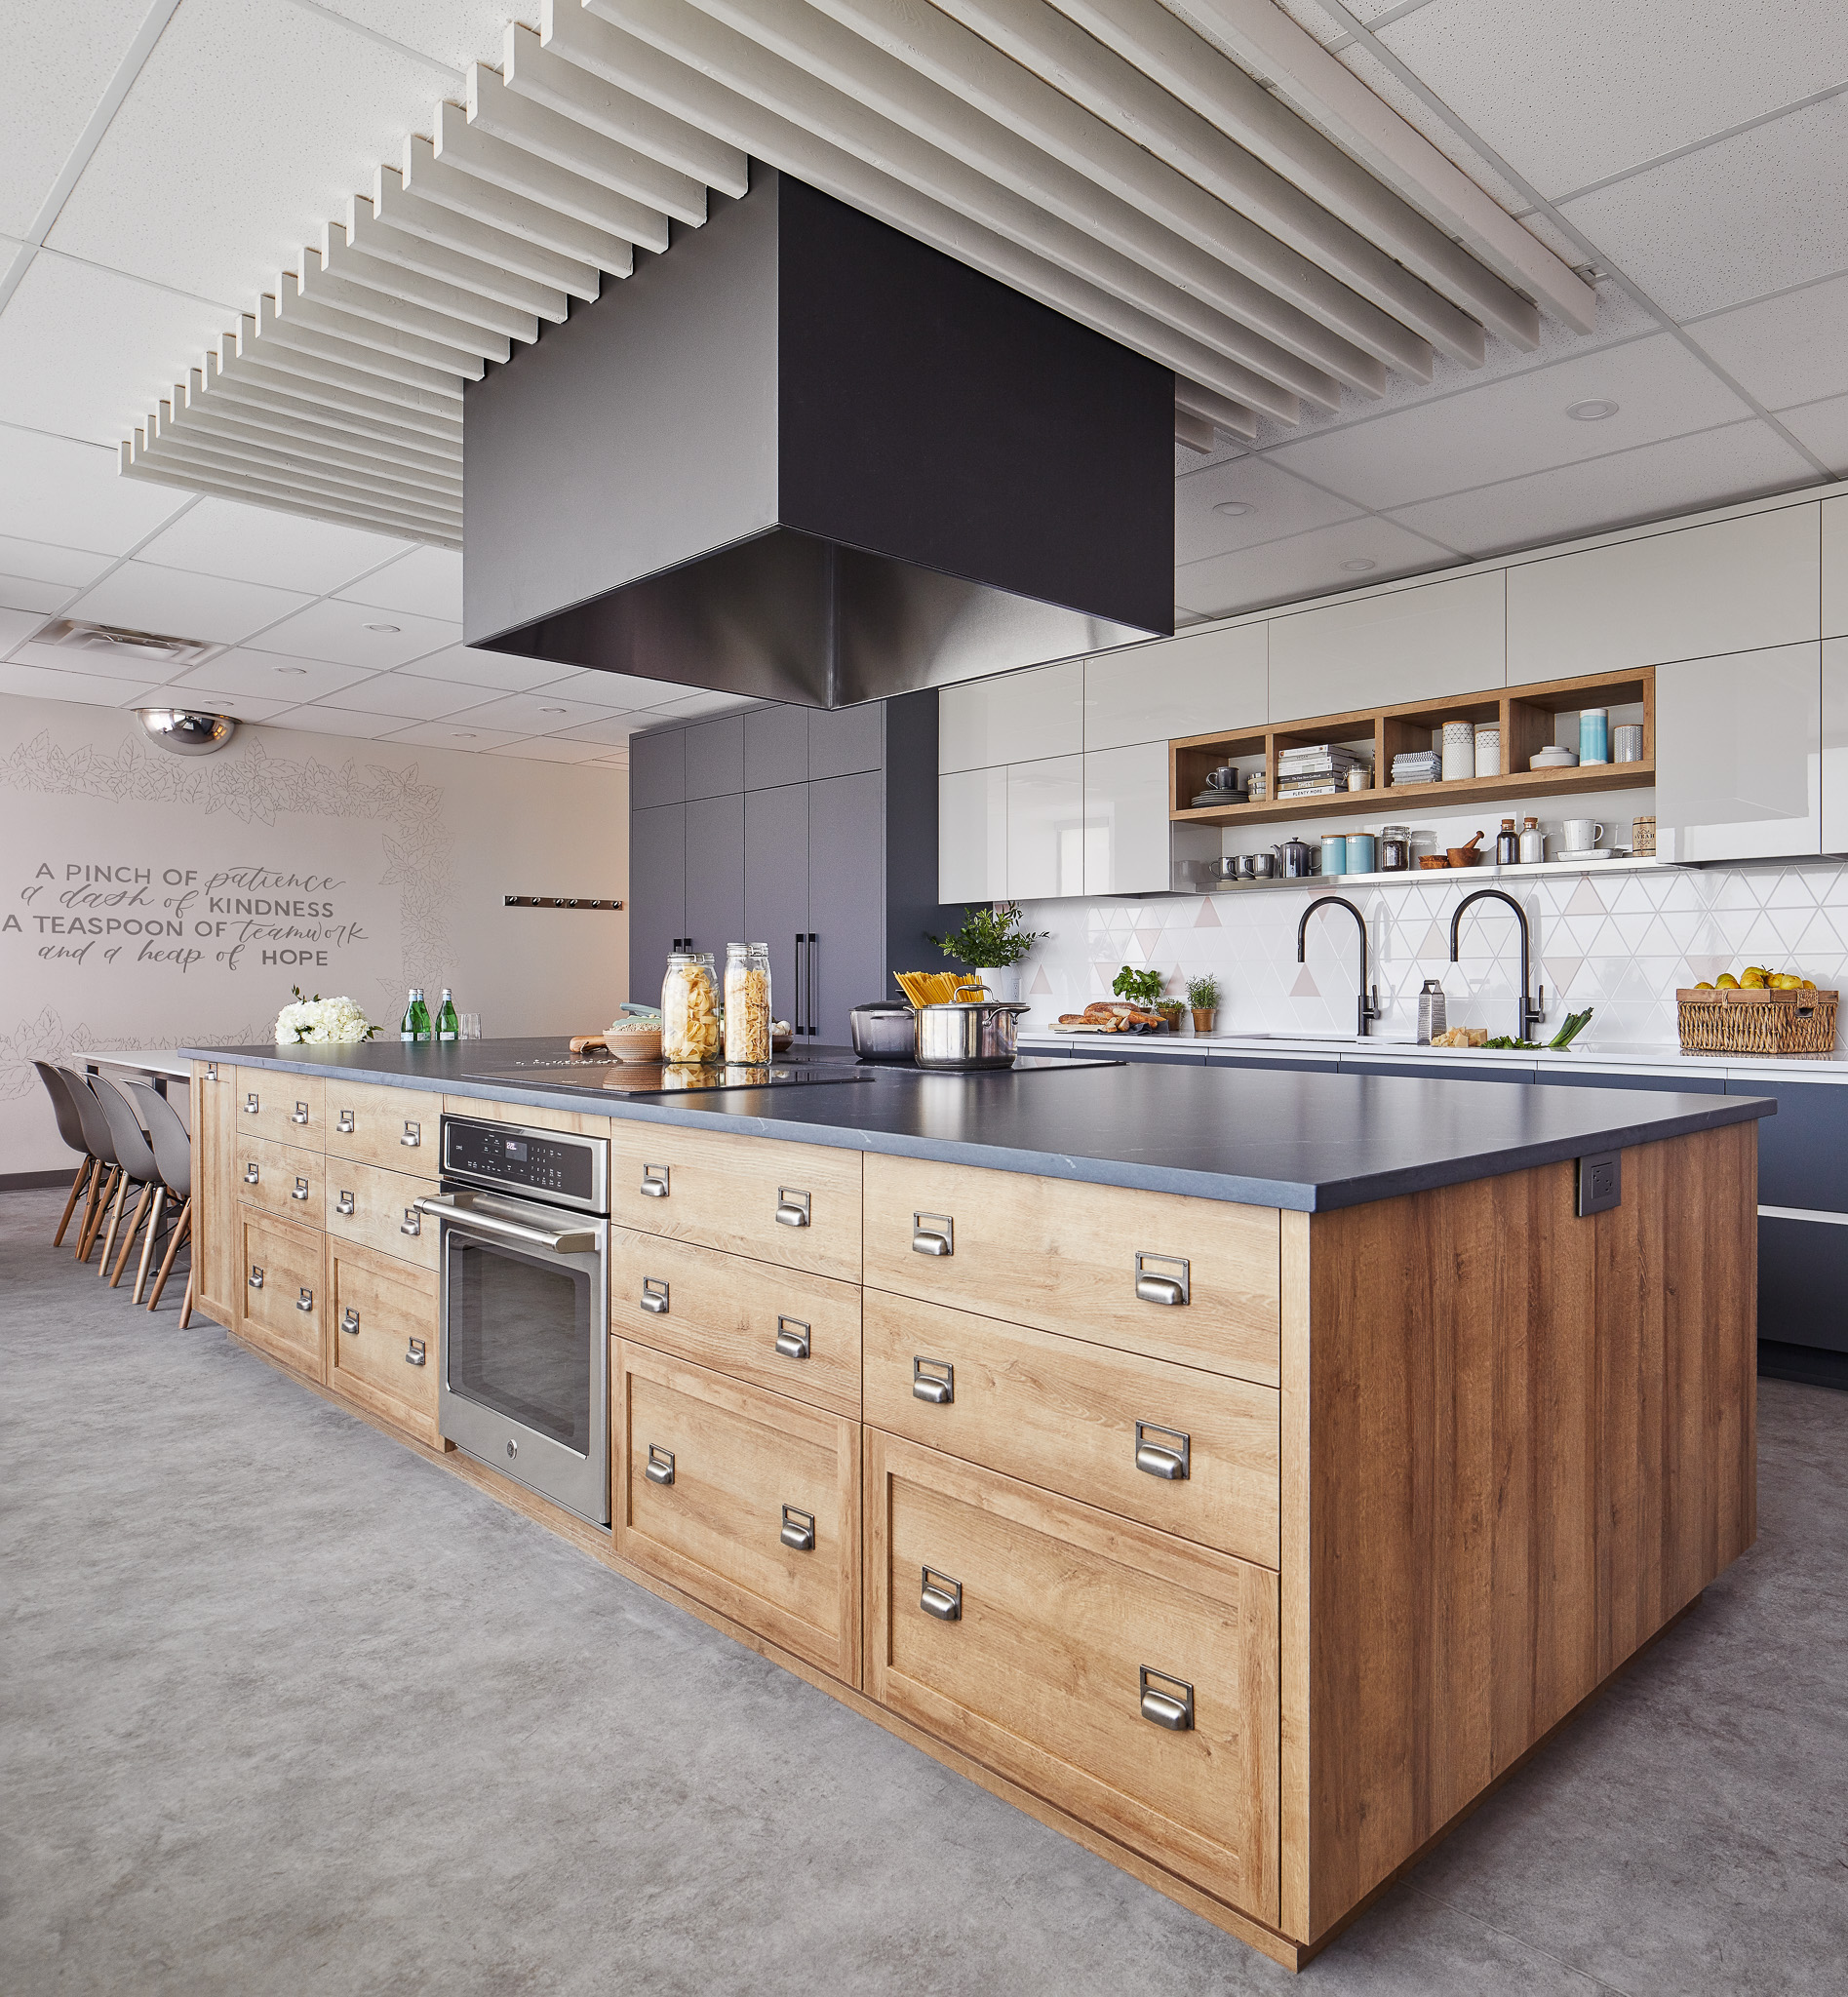 kitchen designer bright light fixtures astro blog donates to aid mental health recovery at the royal ottawa